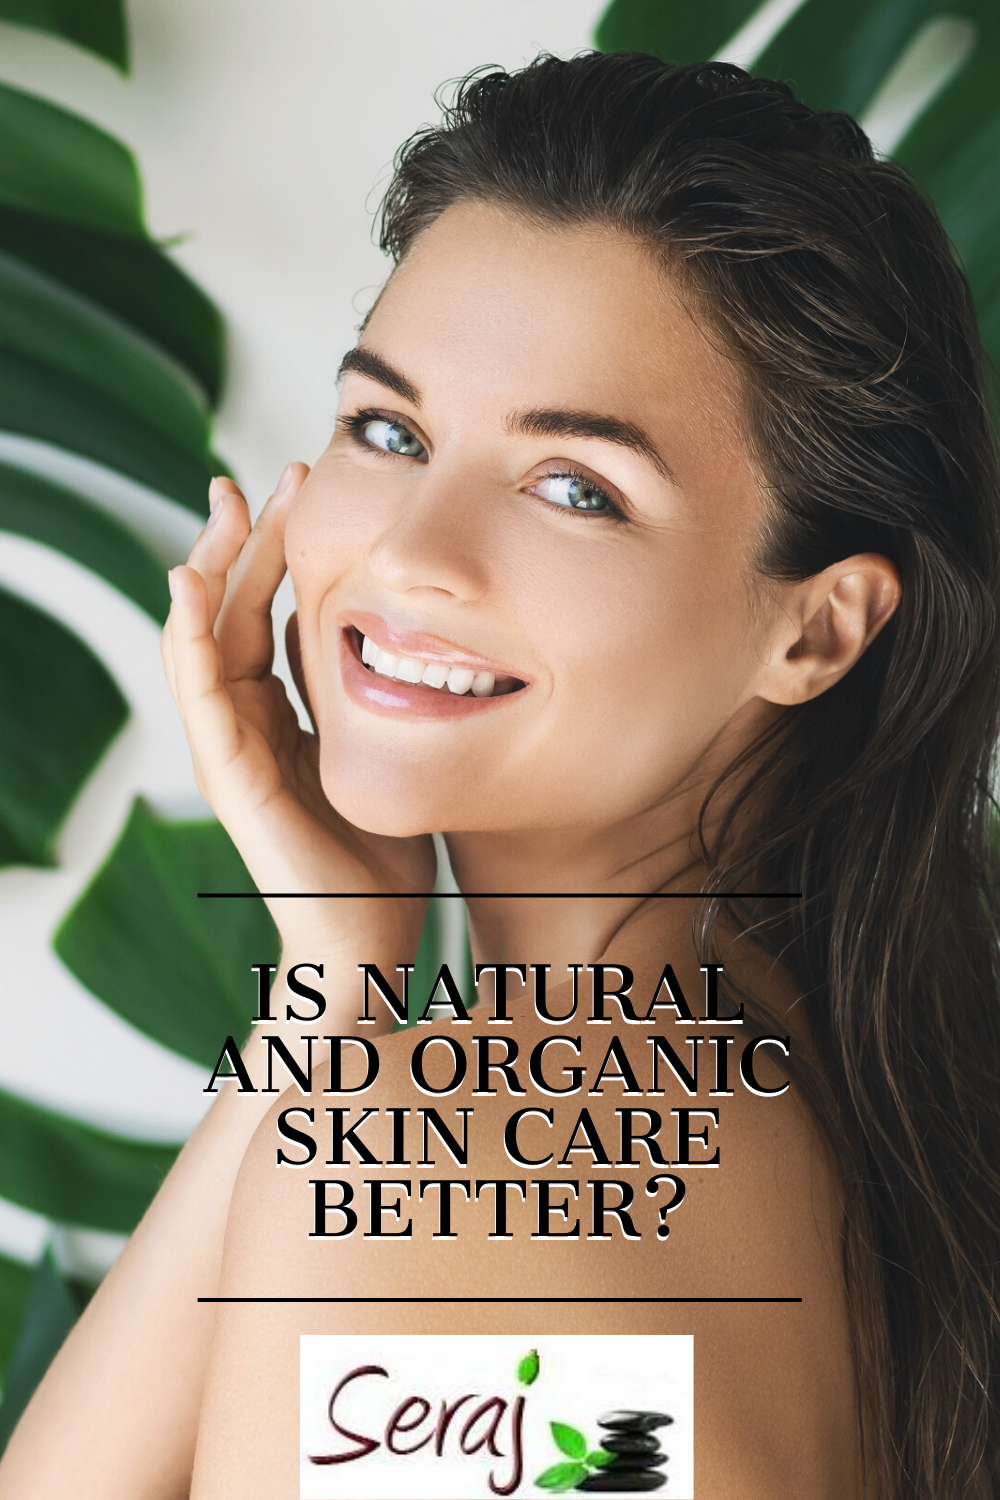 Why Choose Natural and Organic Skin Care?  Here is Why Natural and Organic Skin Care is Better